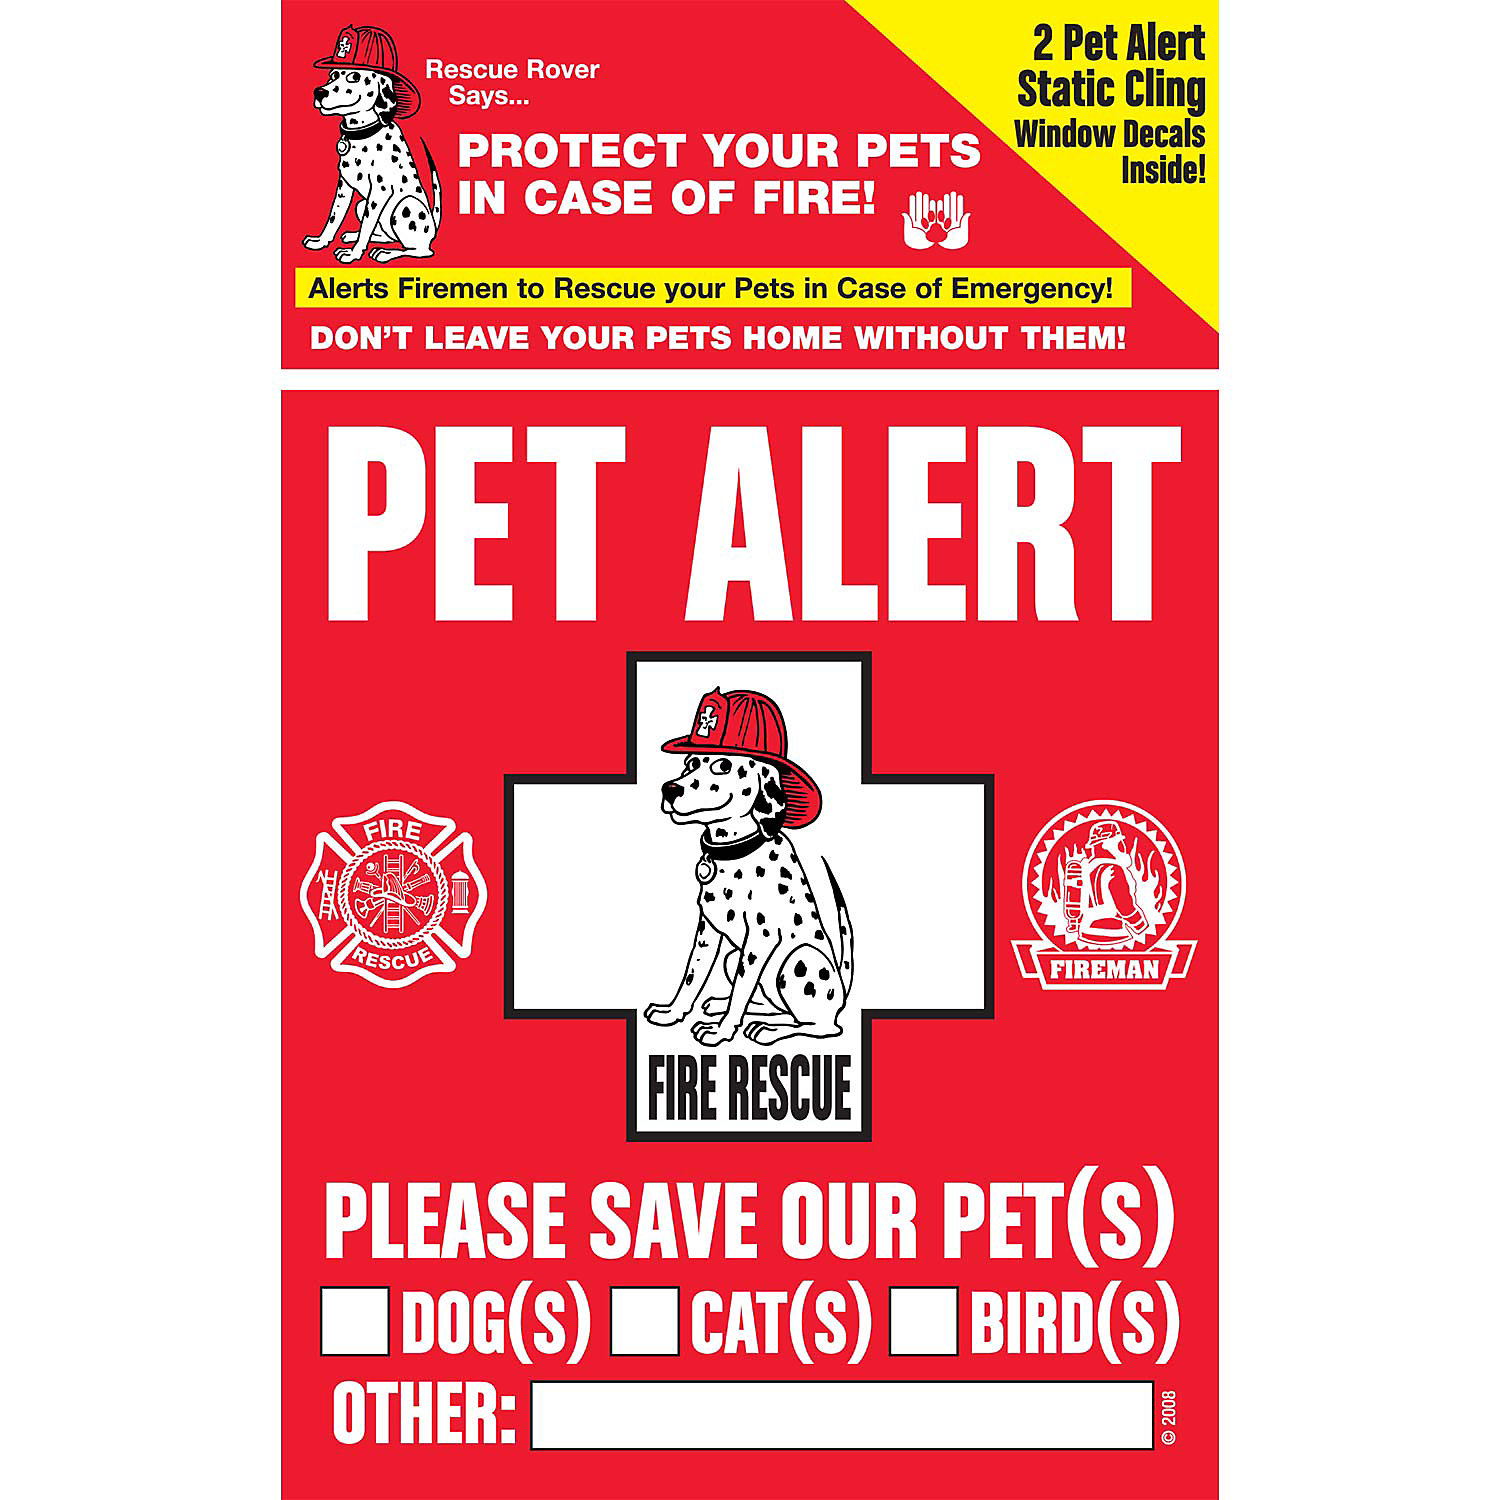 pet safety alert rescue rover pet alert fire rescue decals pack of 2